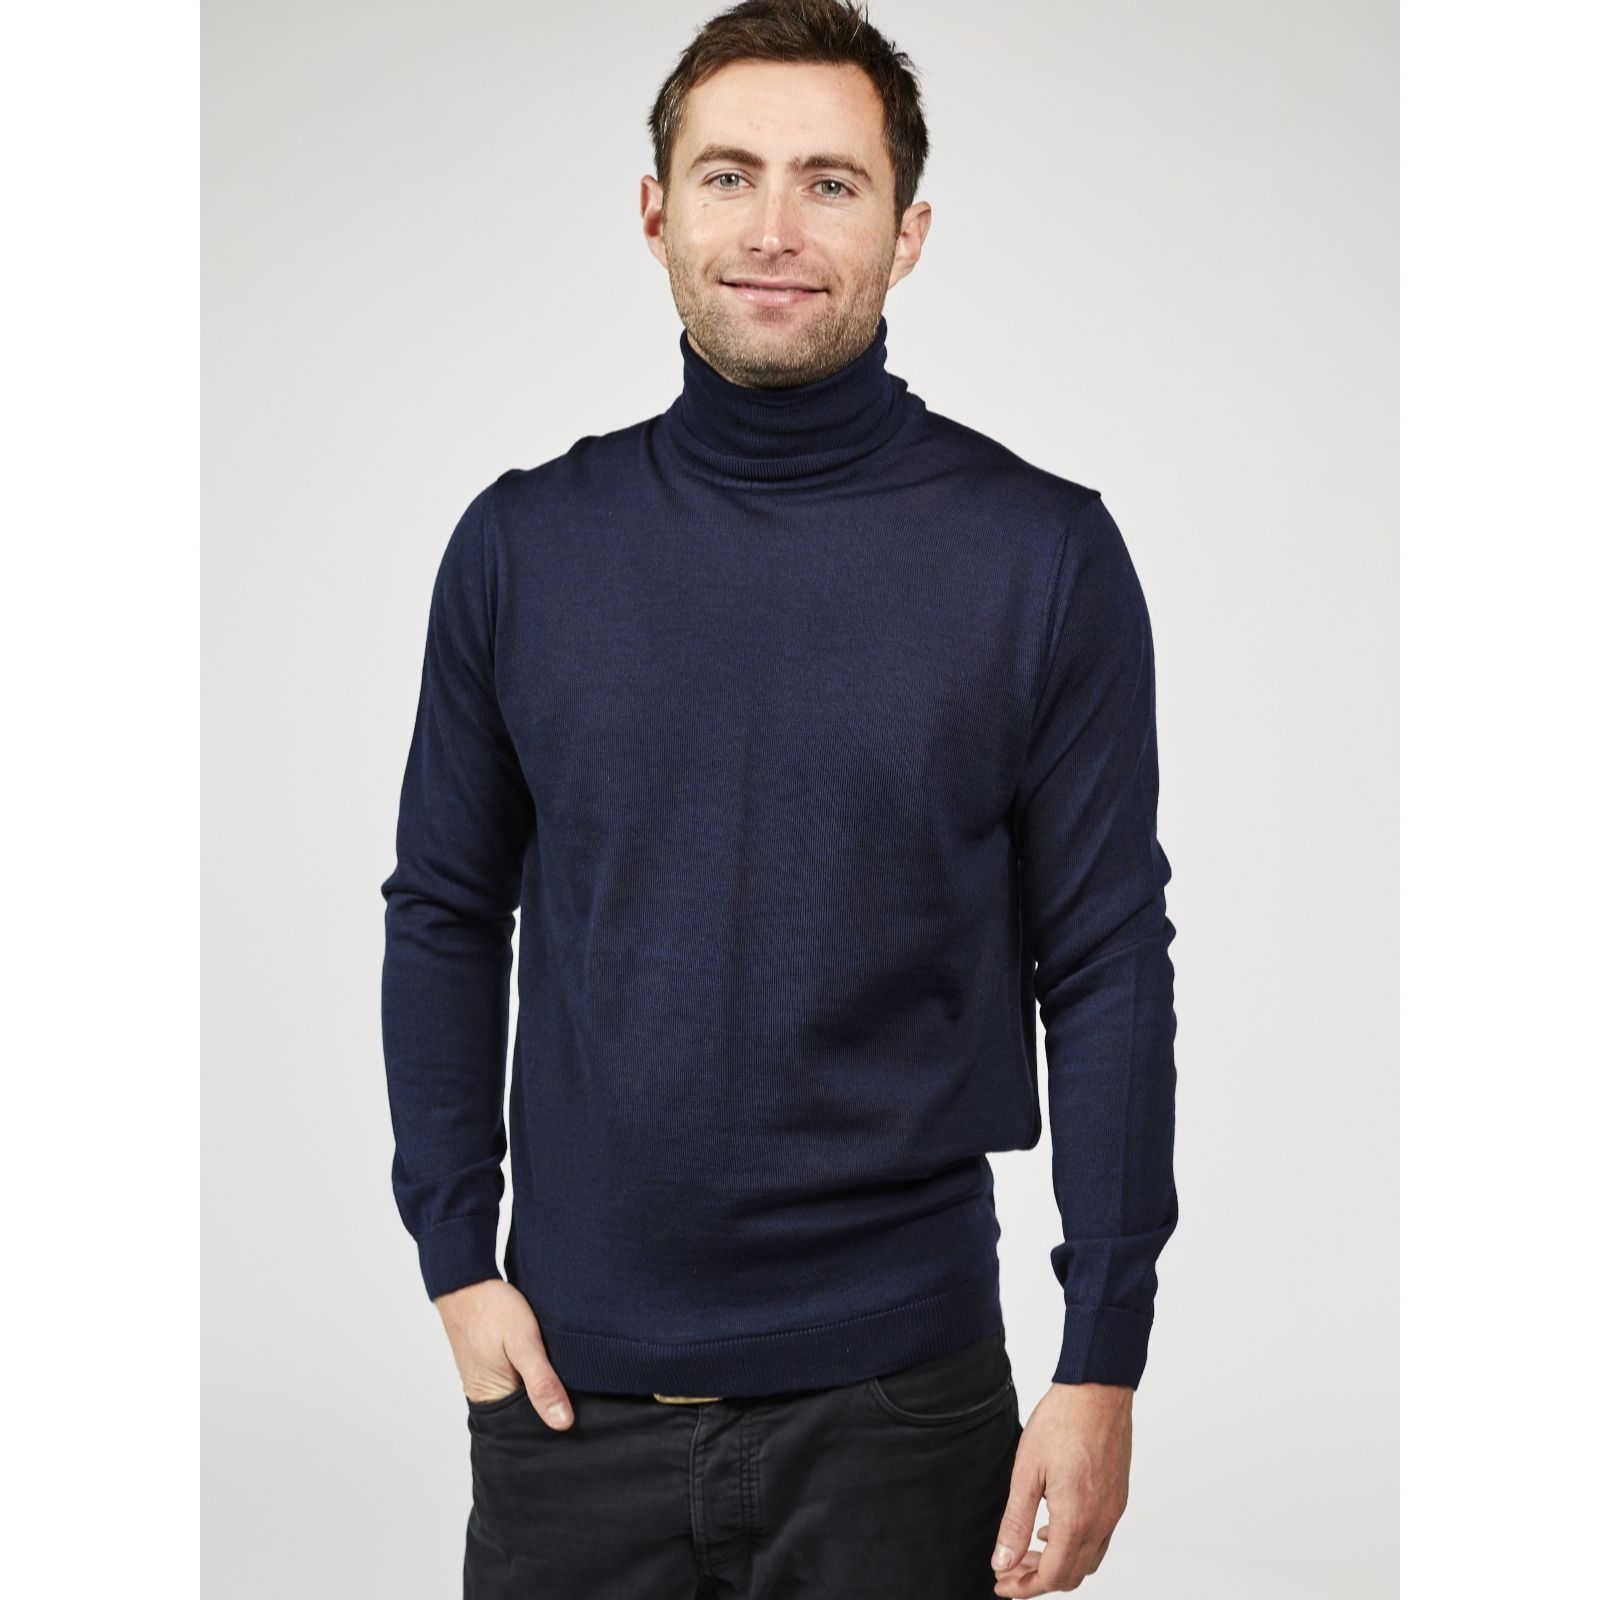 eb0a737e Dressage by Paul Costelloe Men's Merino Wool Roll Neck Sweater - QVC UK